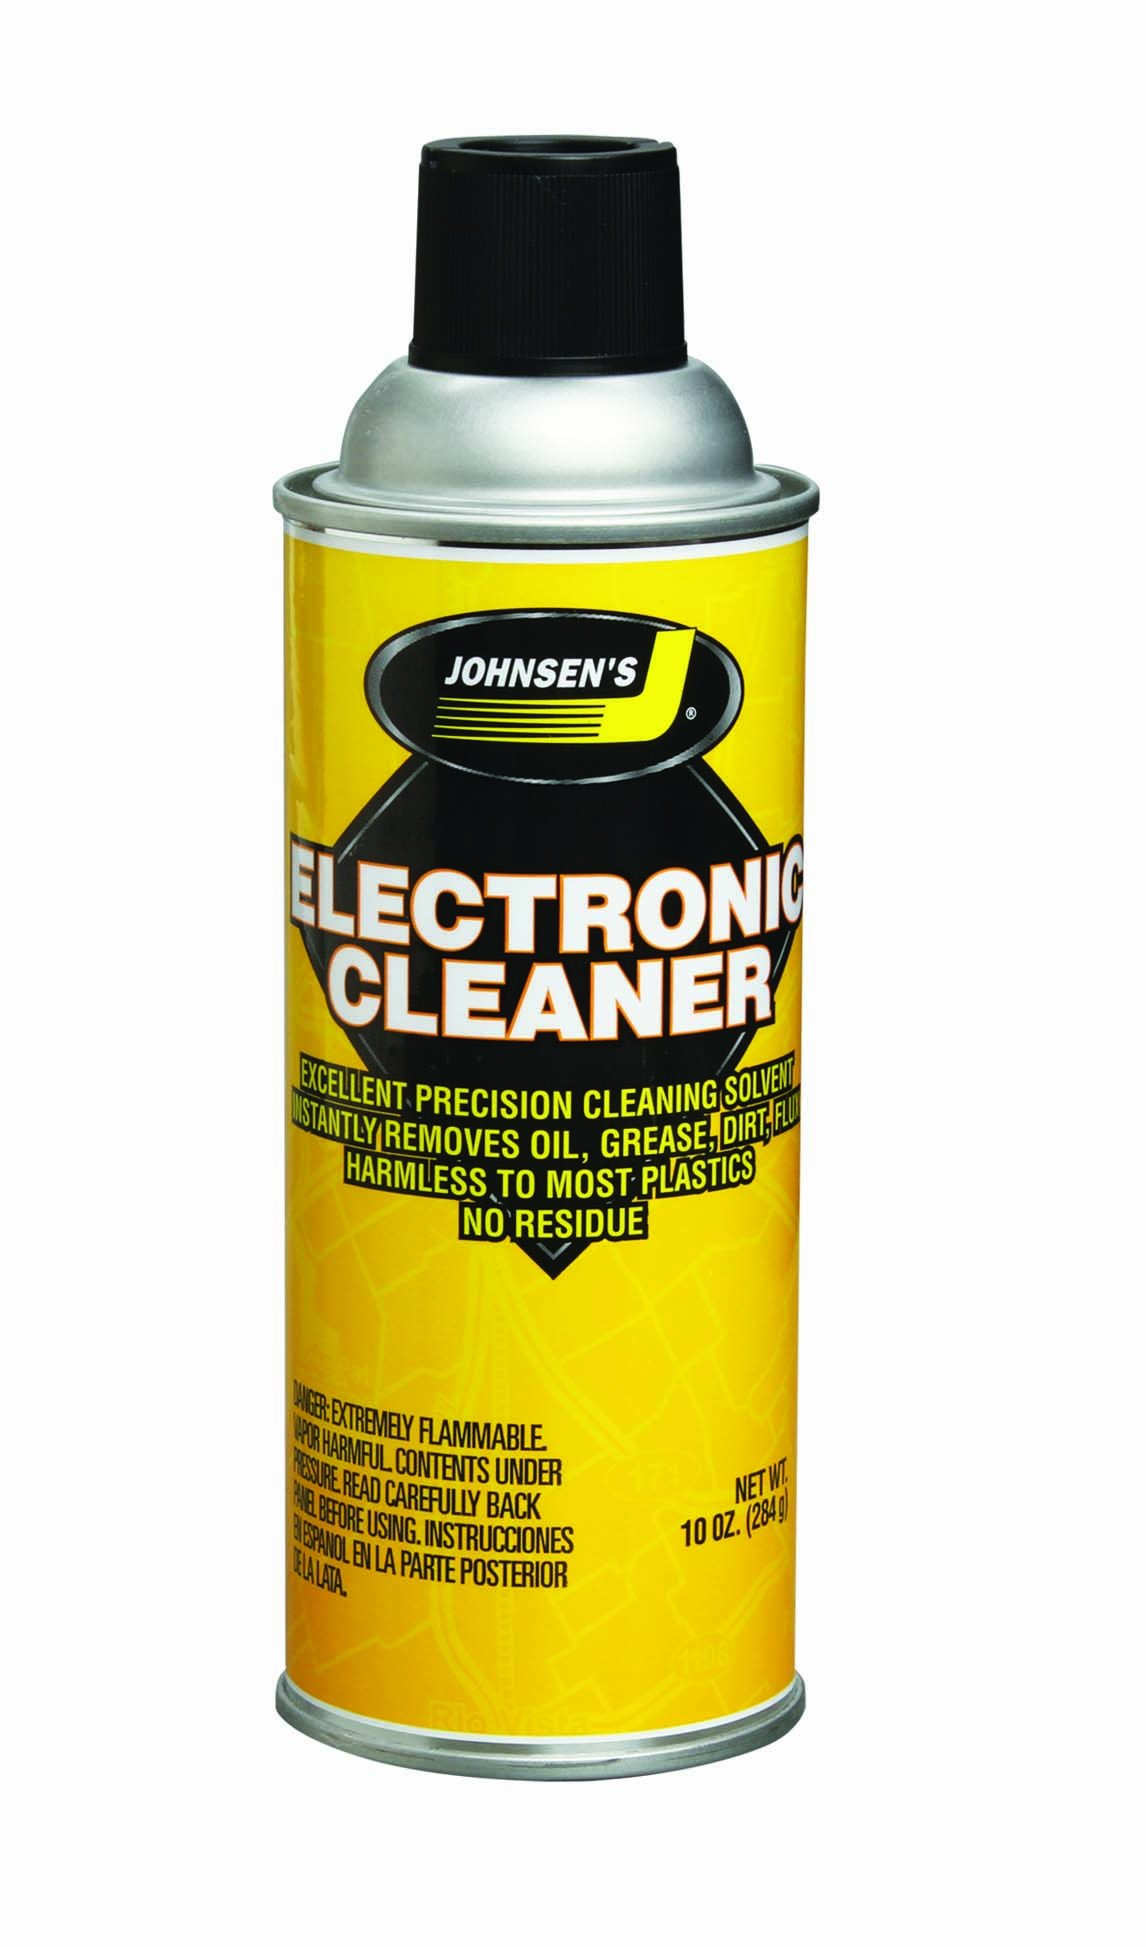 Johnsen's 4600-12PK Electronic Cleaner - 10 oz., (Pack of 12) by Johnsen's